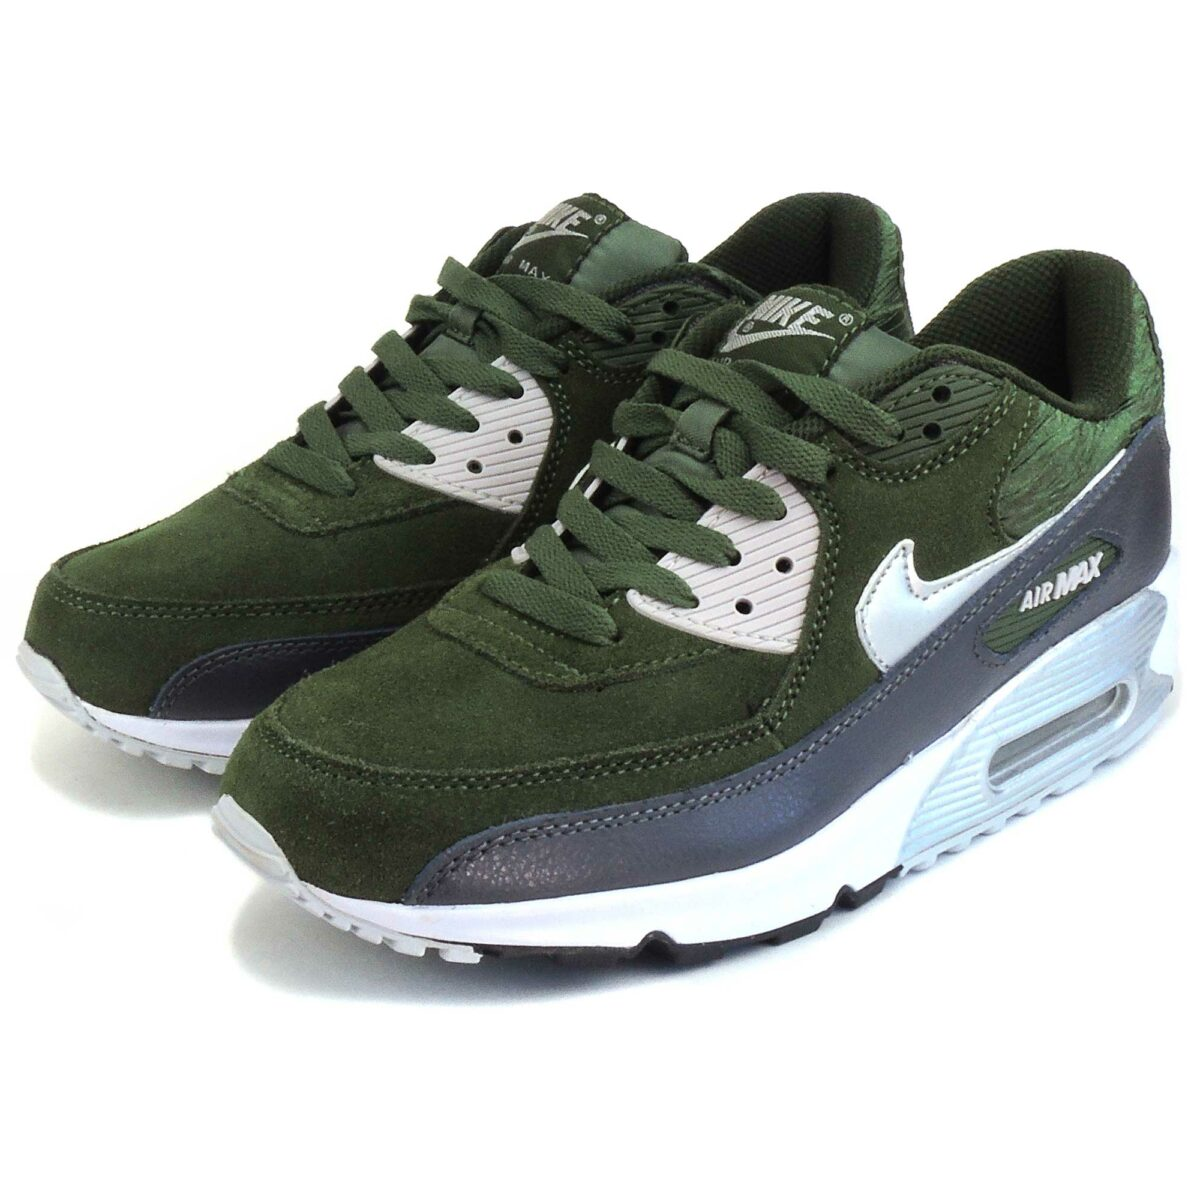 nike air max 90 carbon green 768887_301 купить